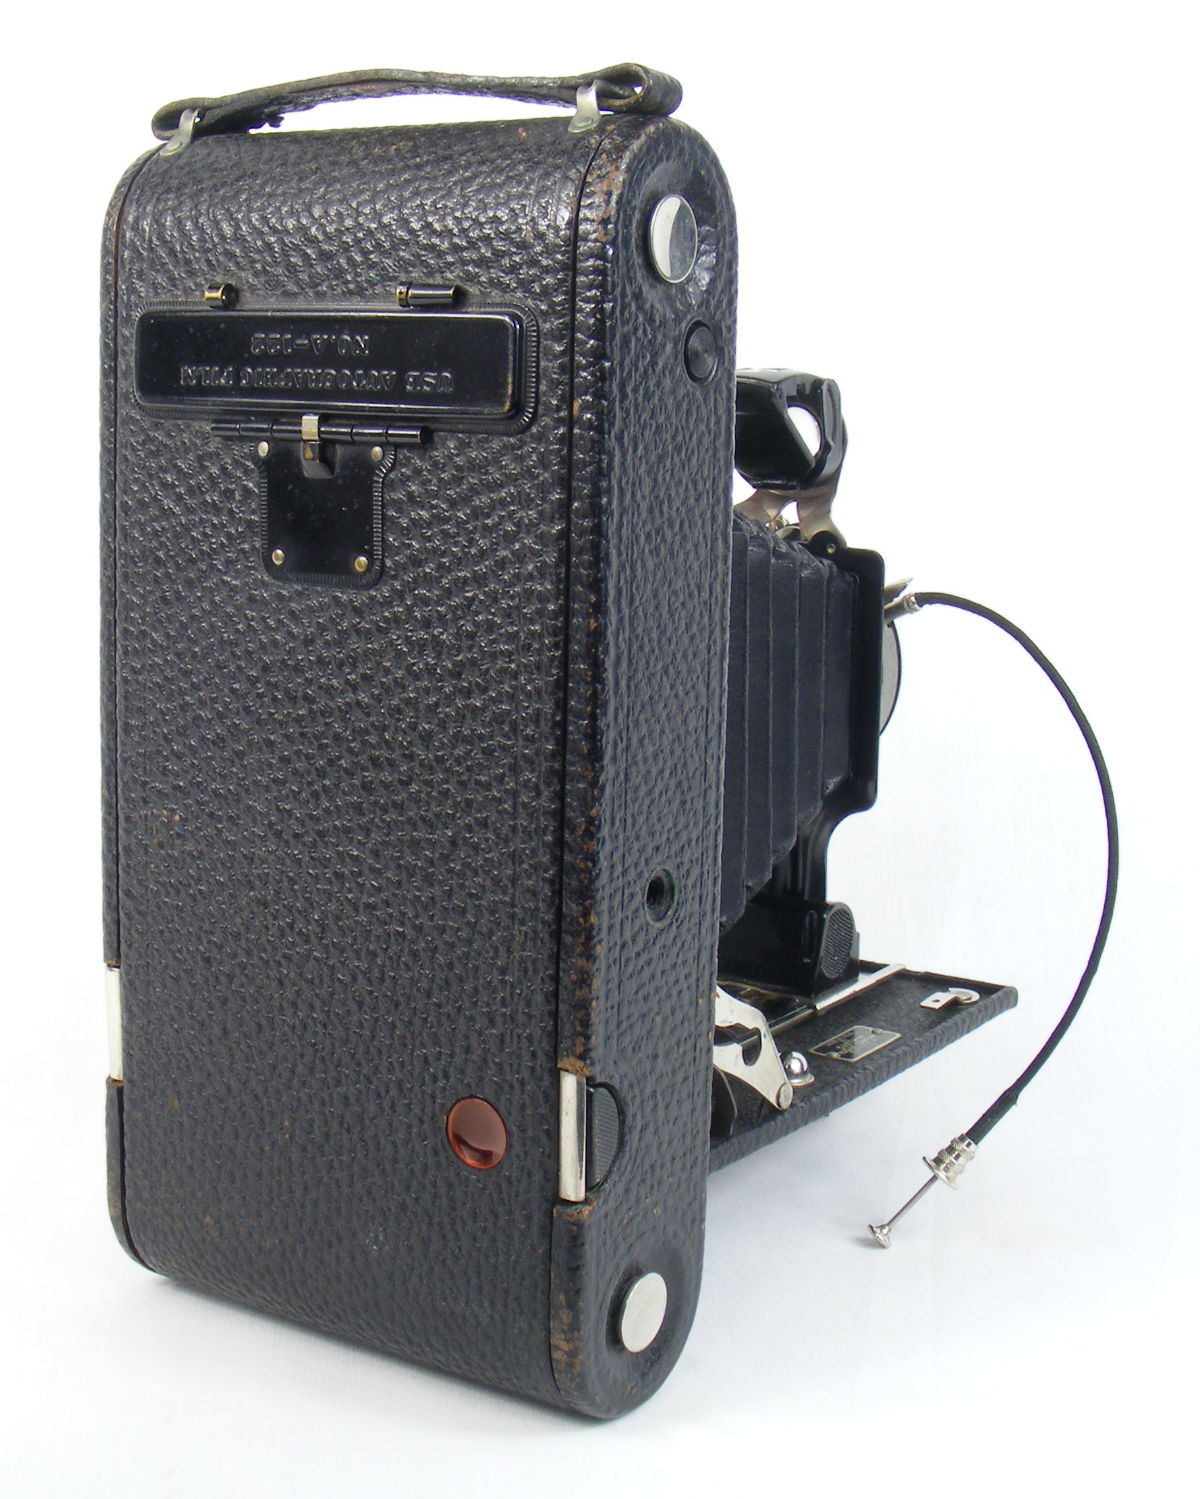 Image of No 3A Autographic Kodak Junior camera (rear view)